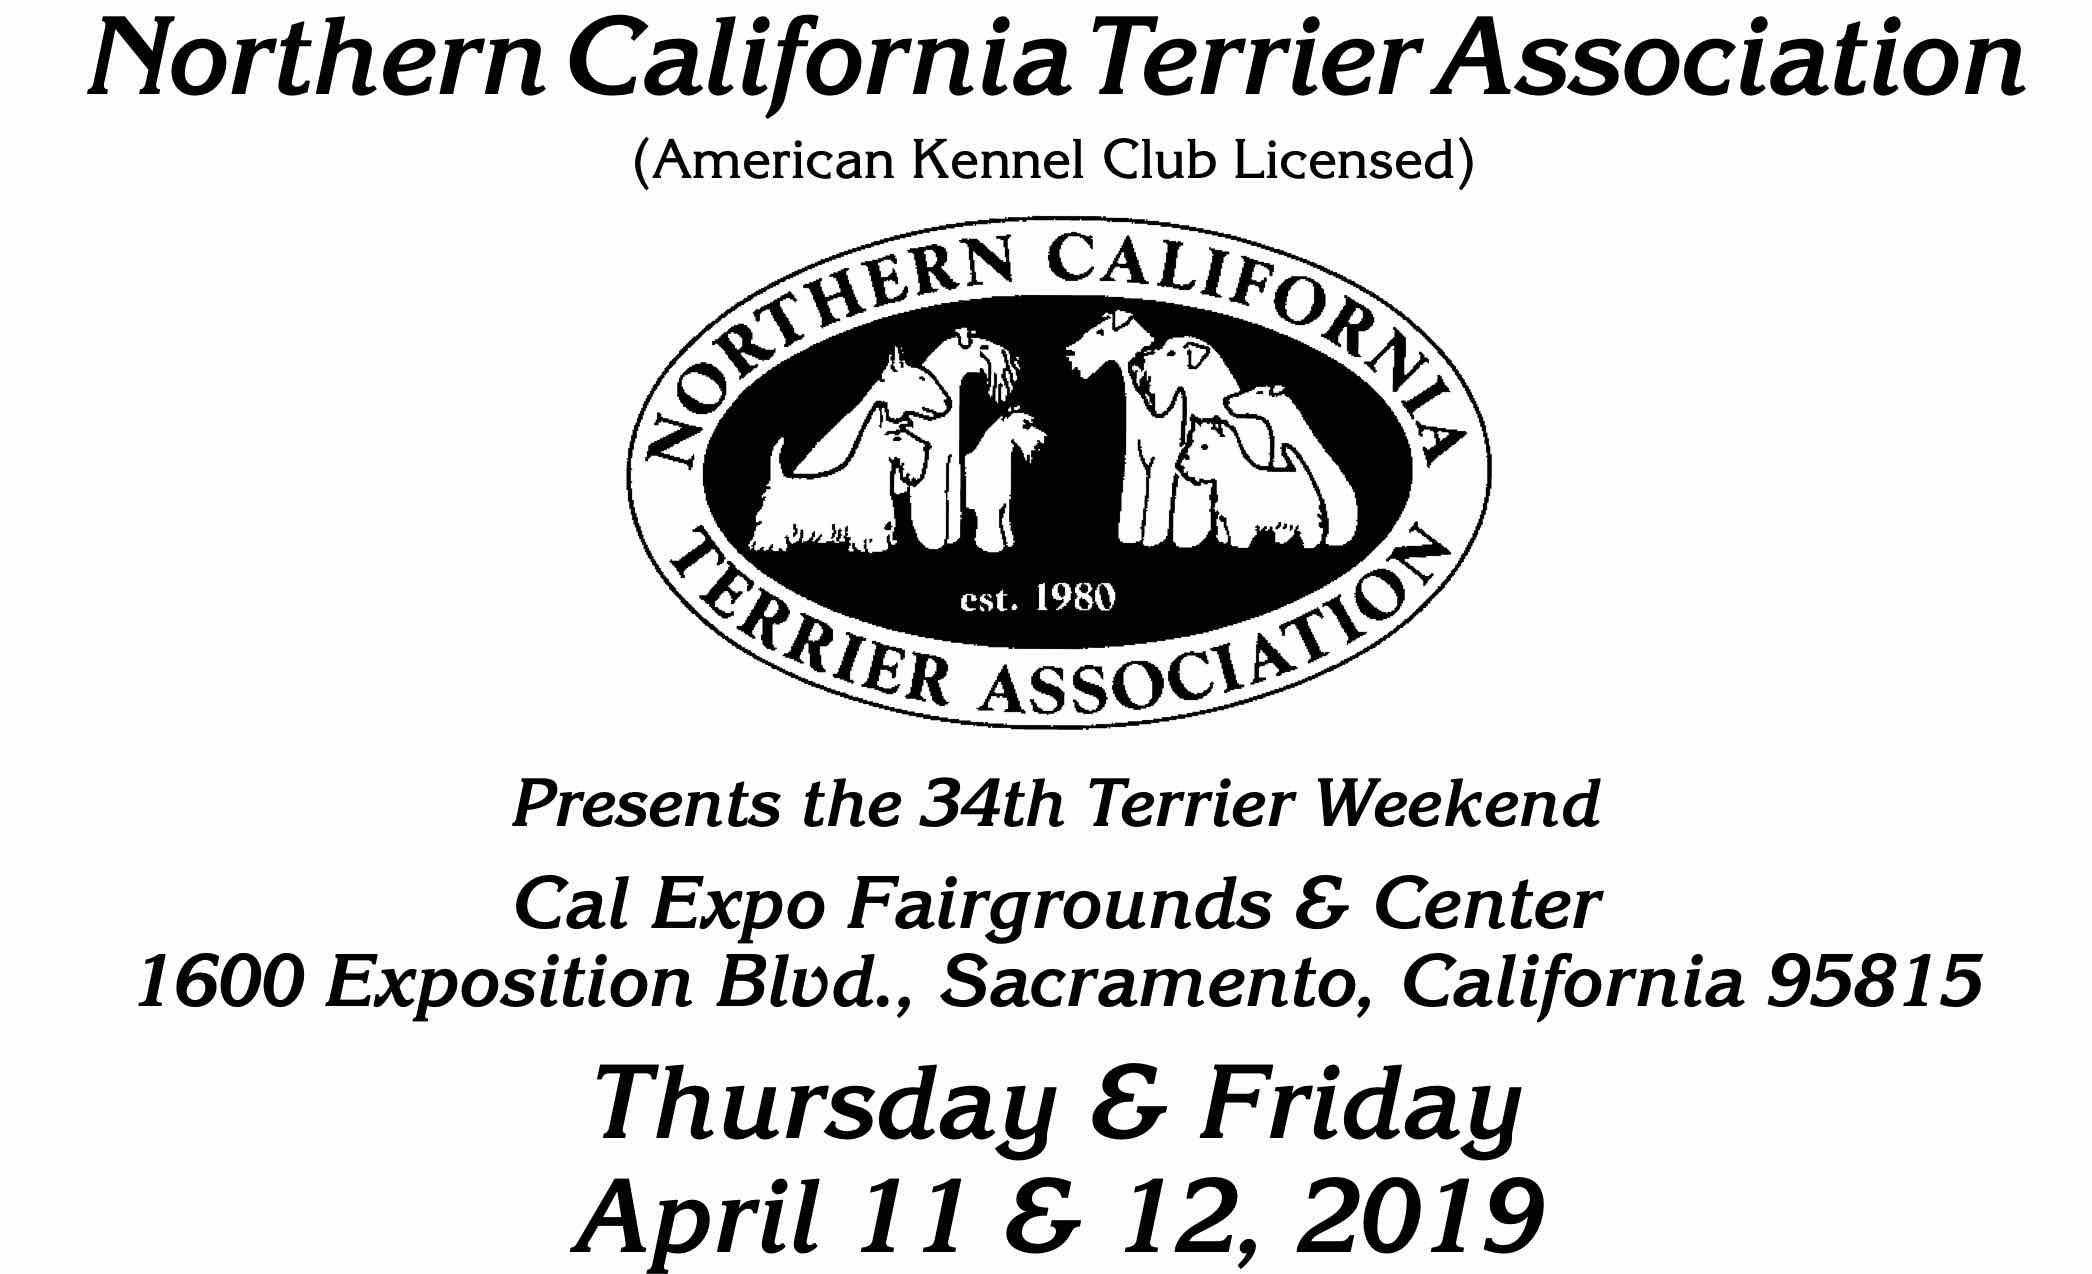 2019 Northern California Terrier Association premium list